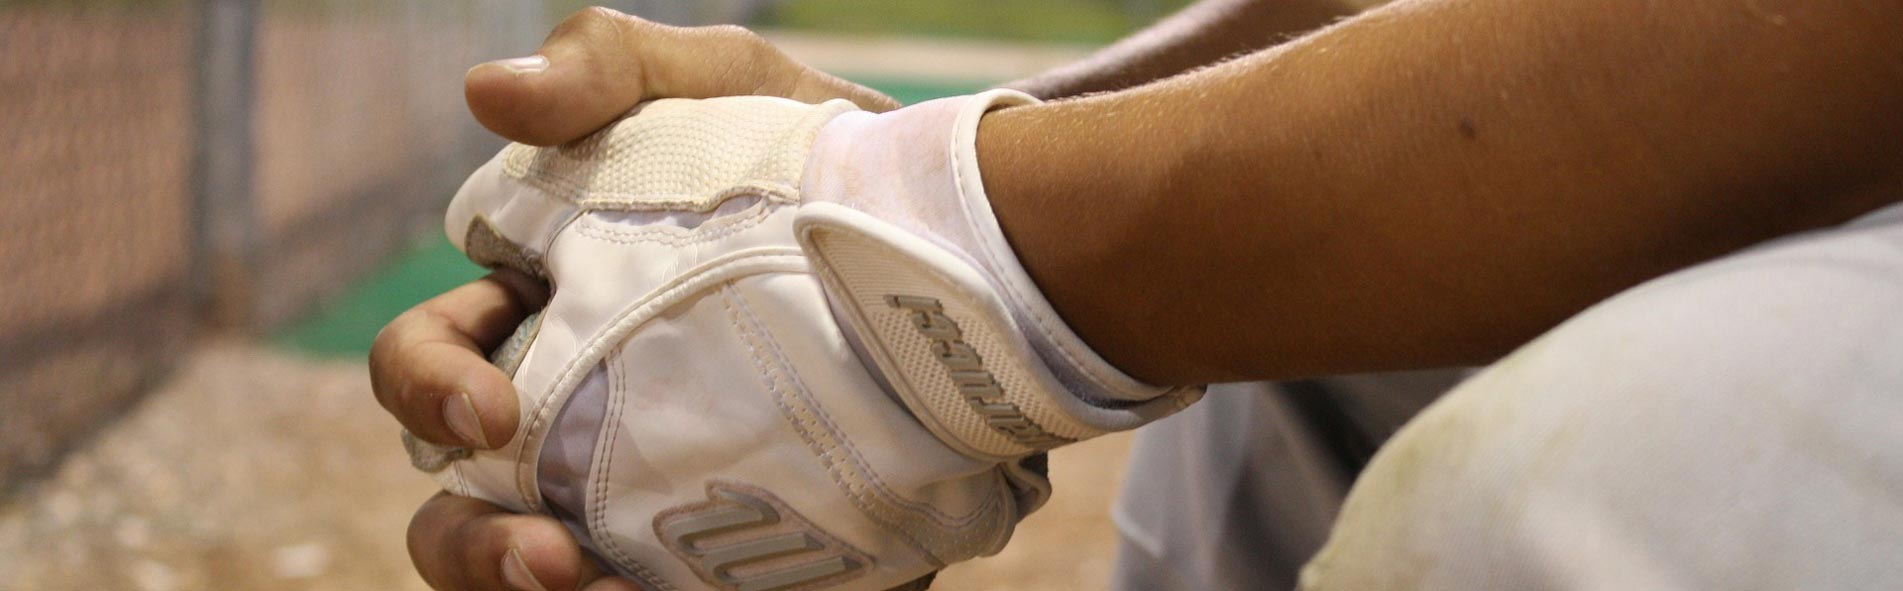 Baseball Hand, Wrist and Finger Therapy Exercises